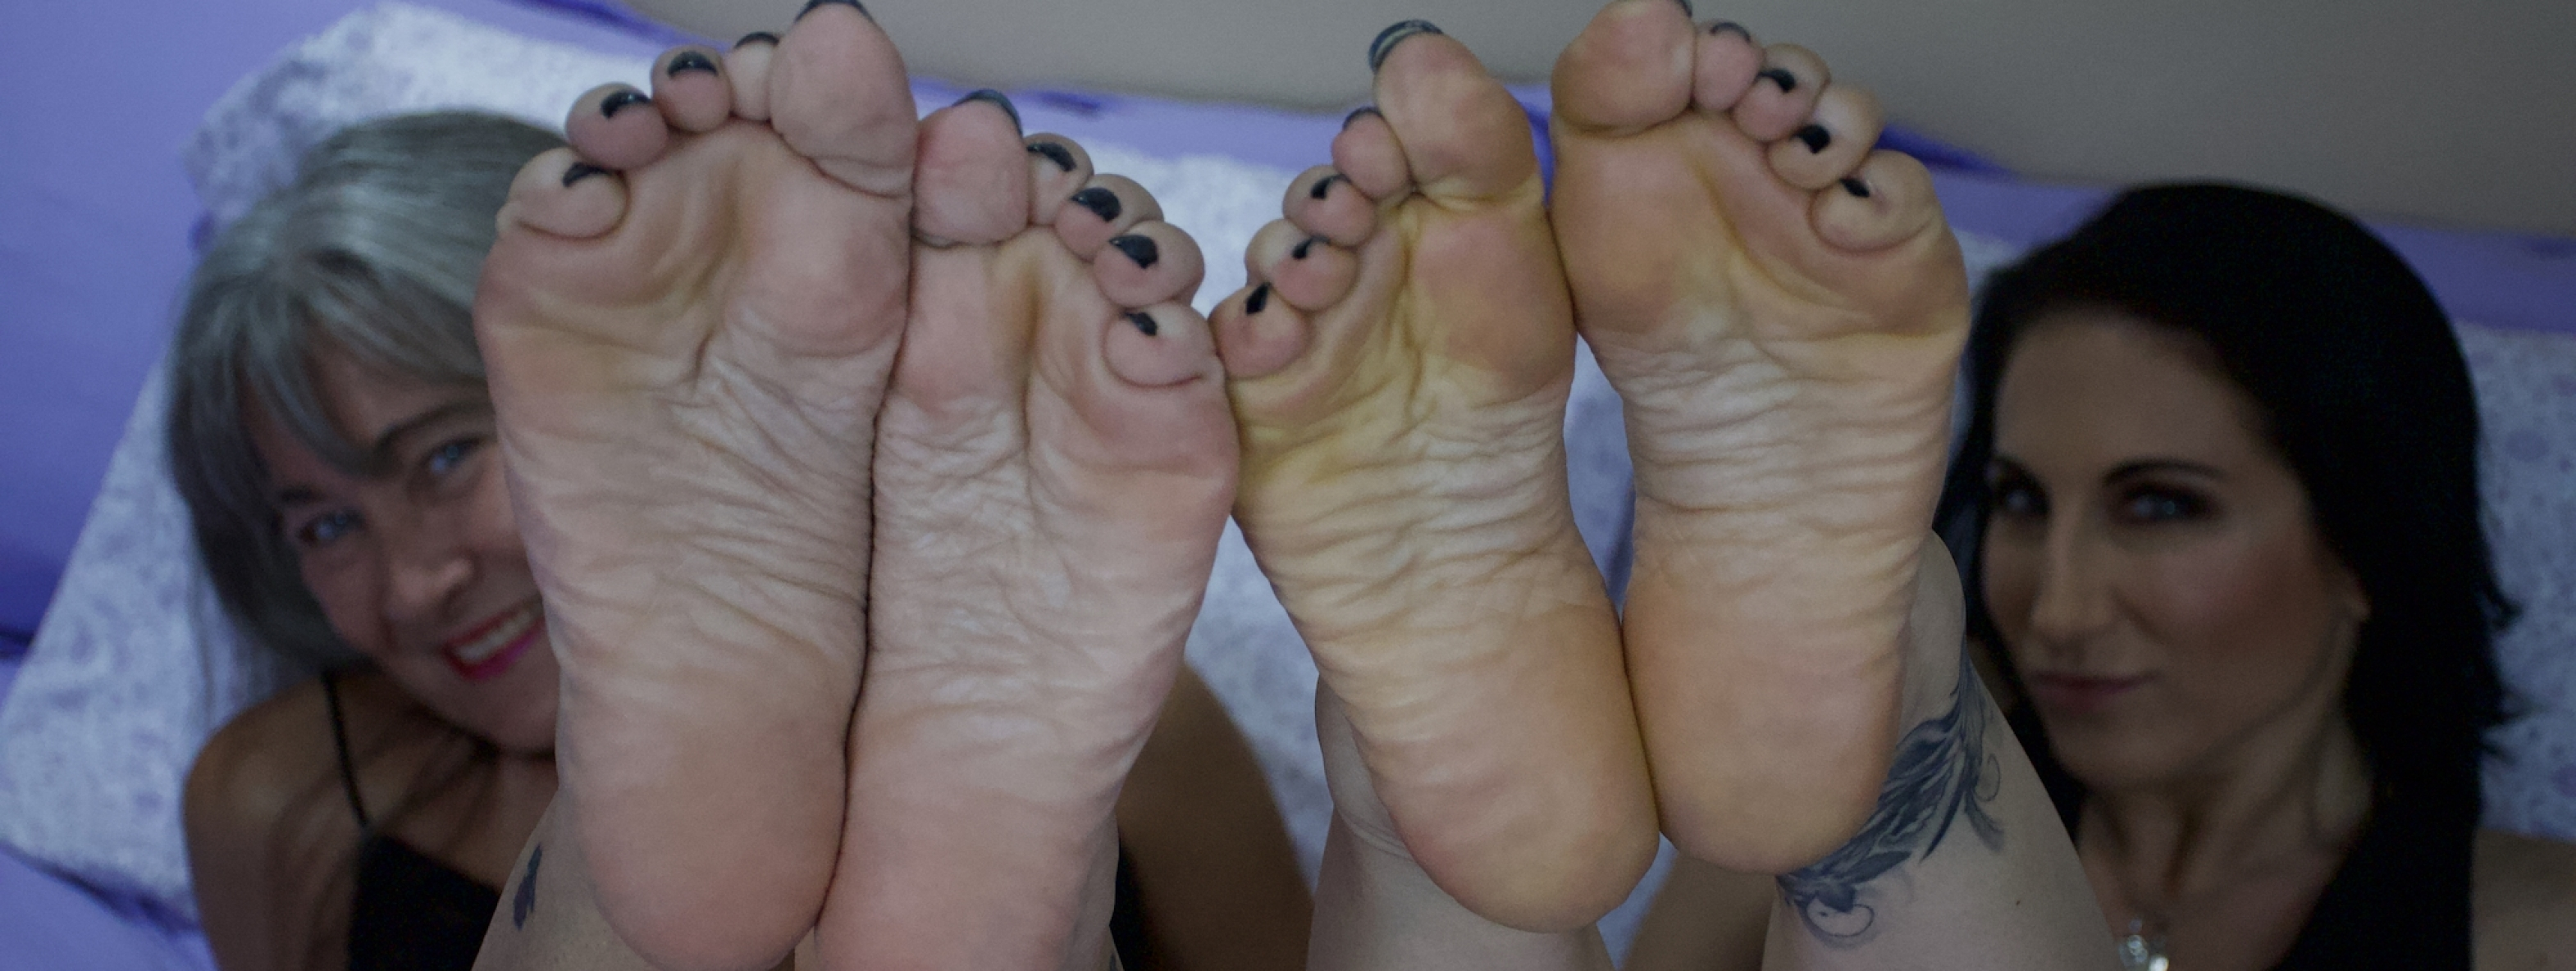 content/black_toes_foot_job/8.jpg